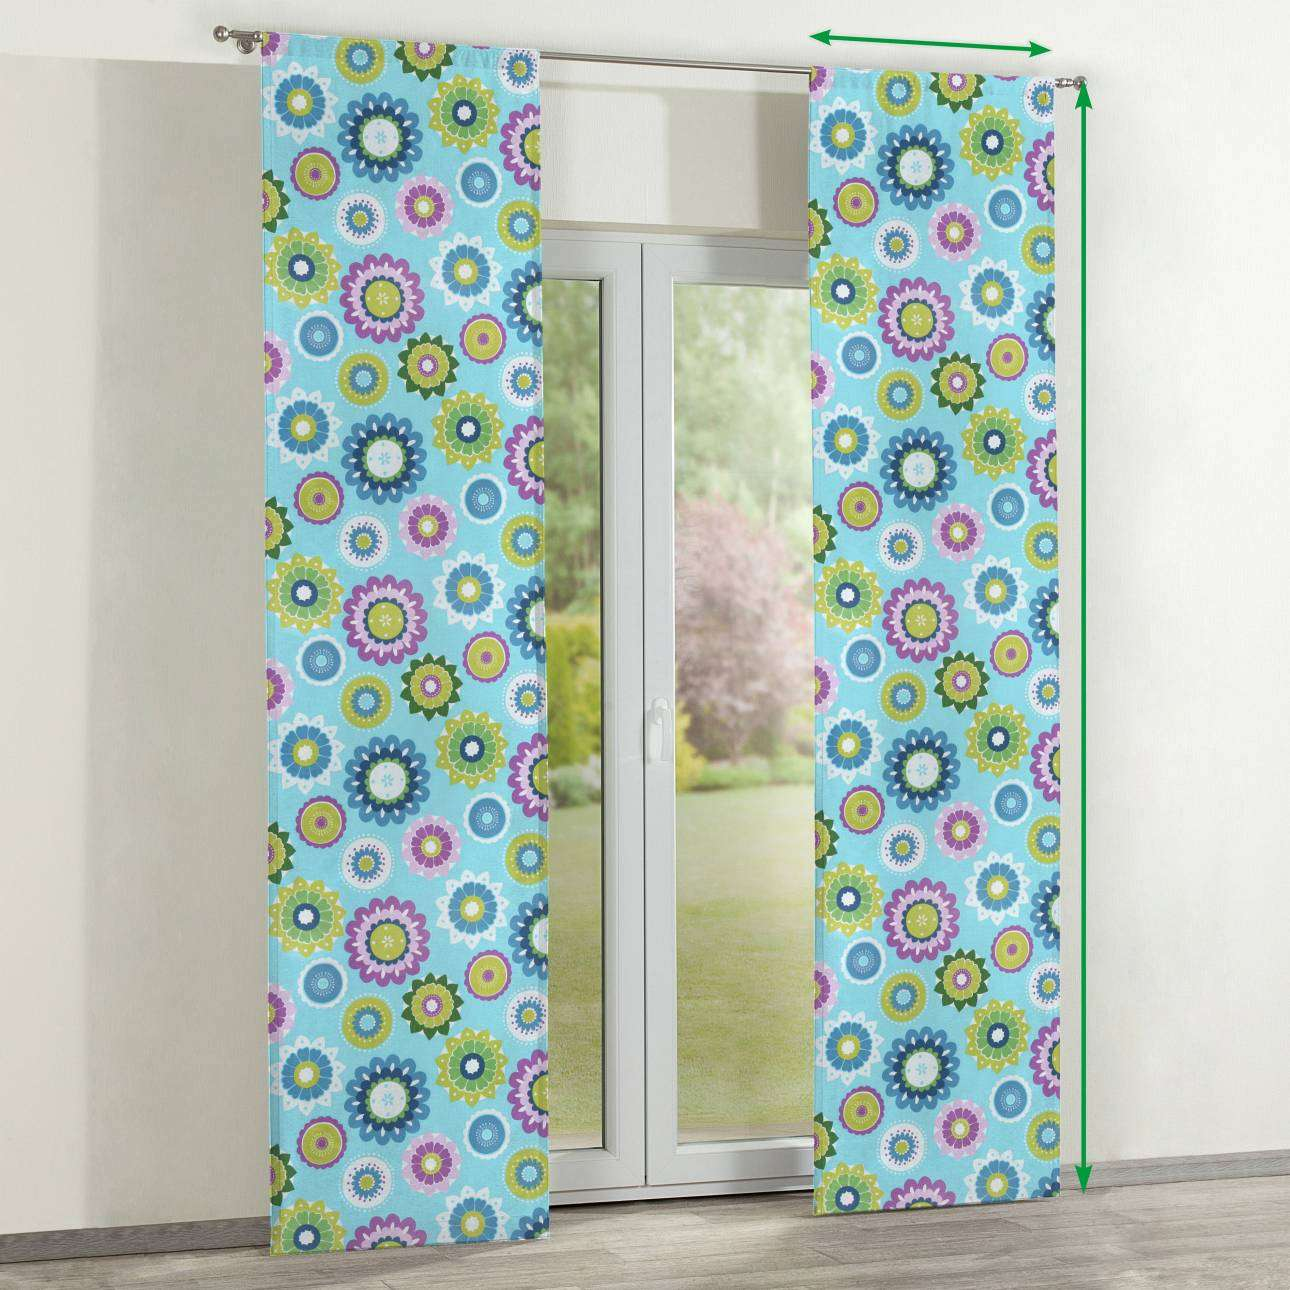 Slot panel curtains – Set of 2 in collection SALE, fabric: 137-20